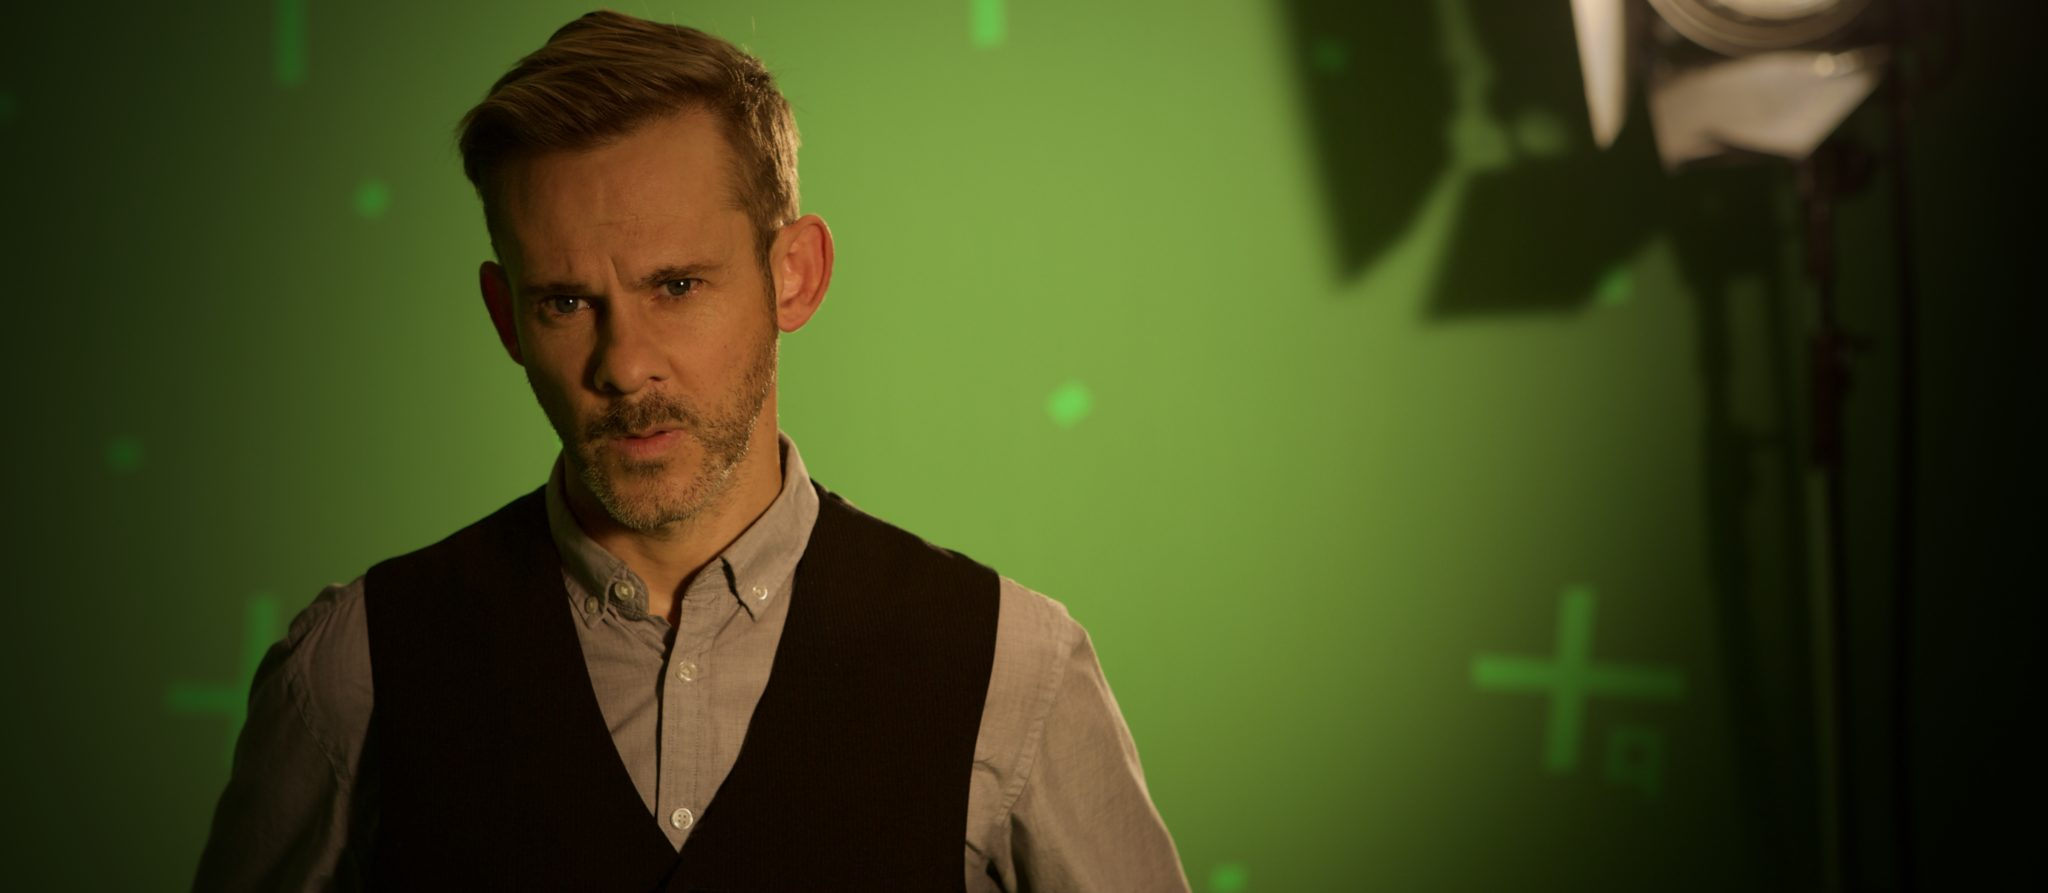 Dominic Monaghan on green screen